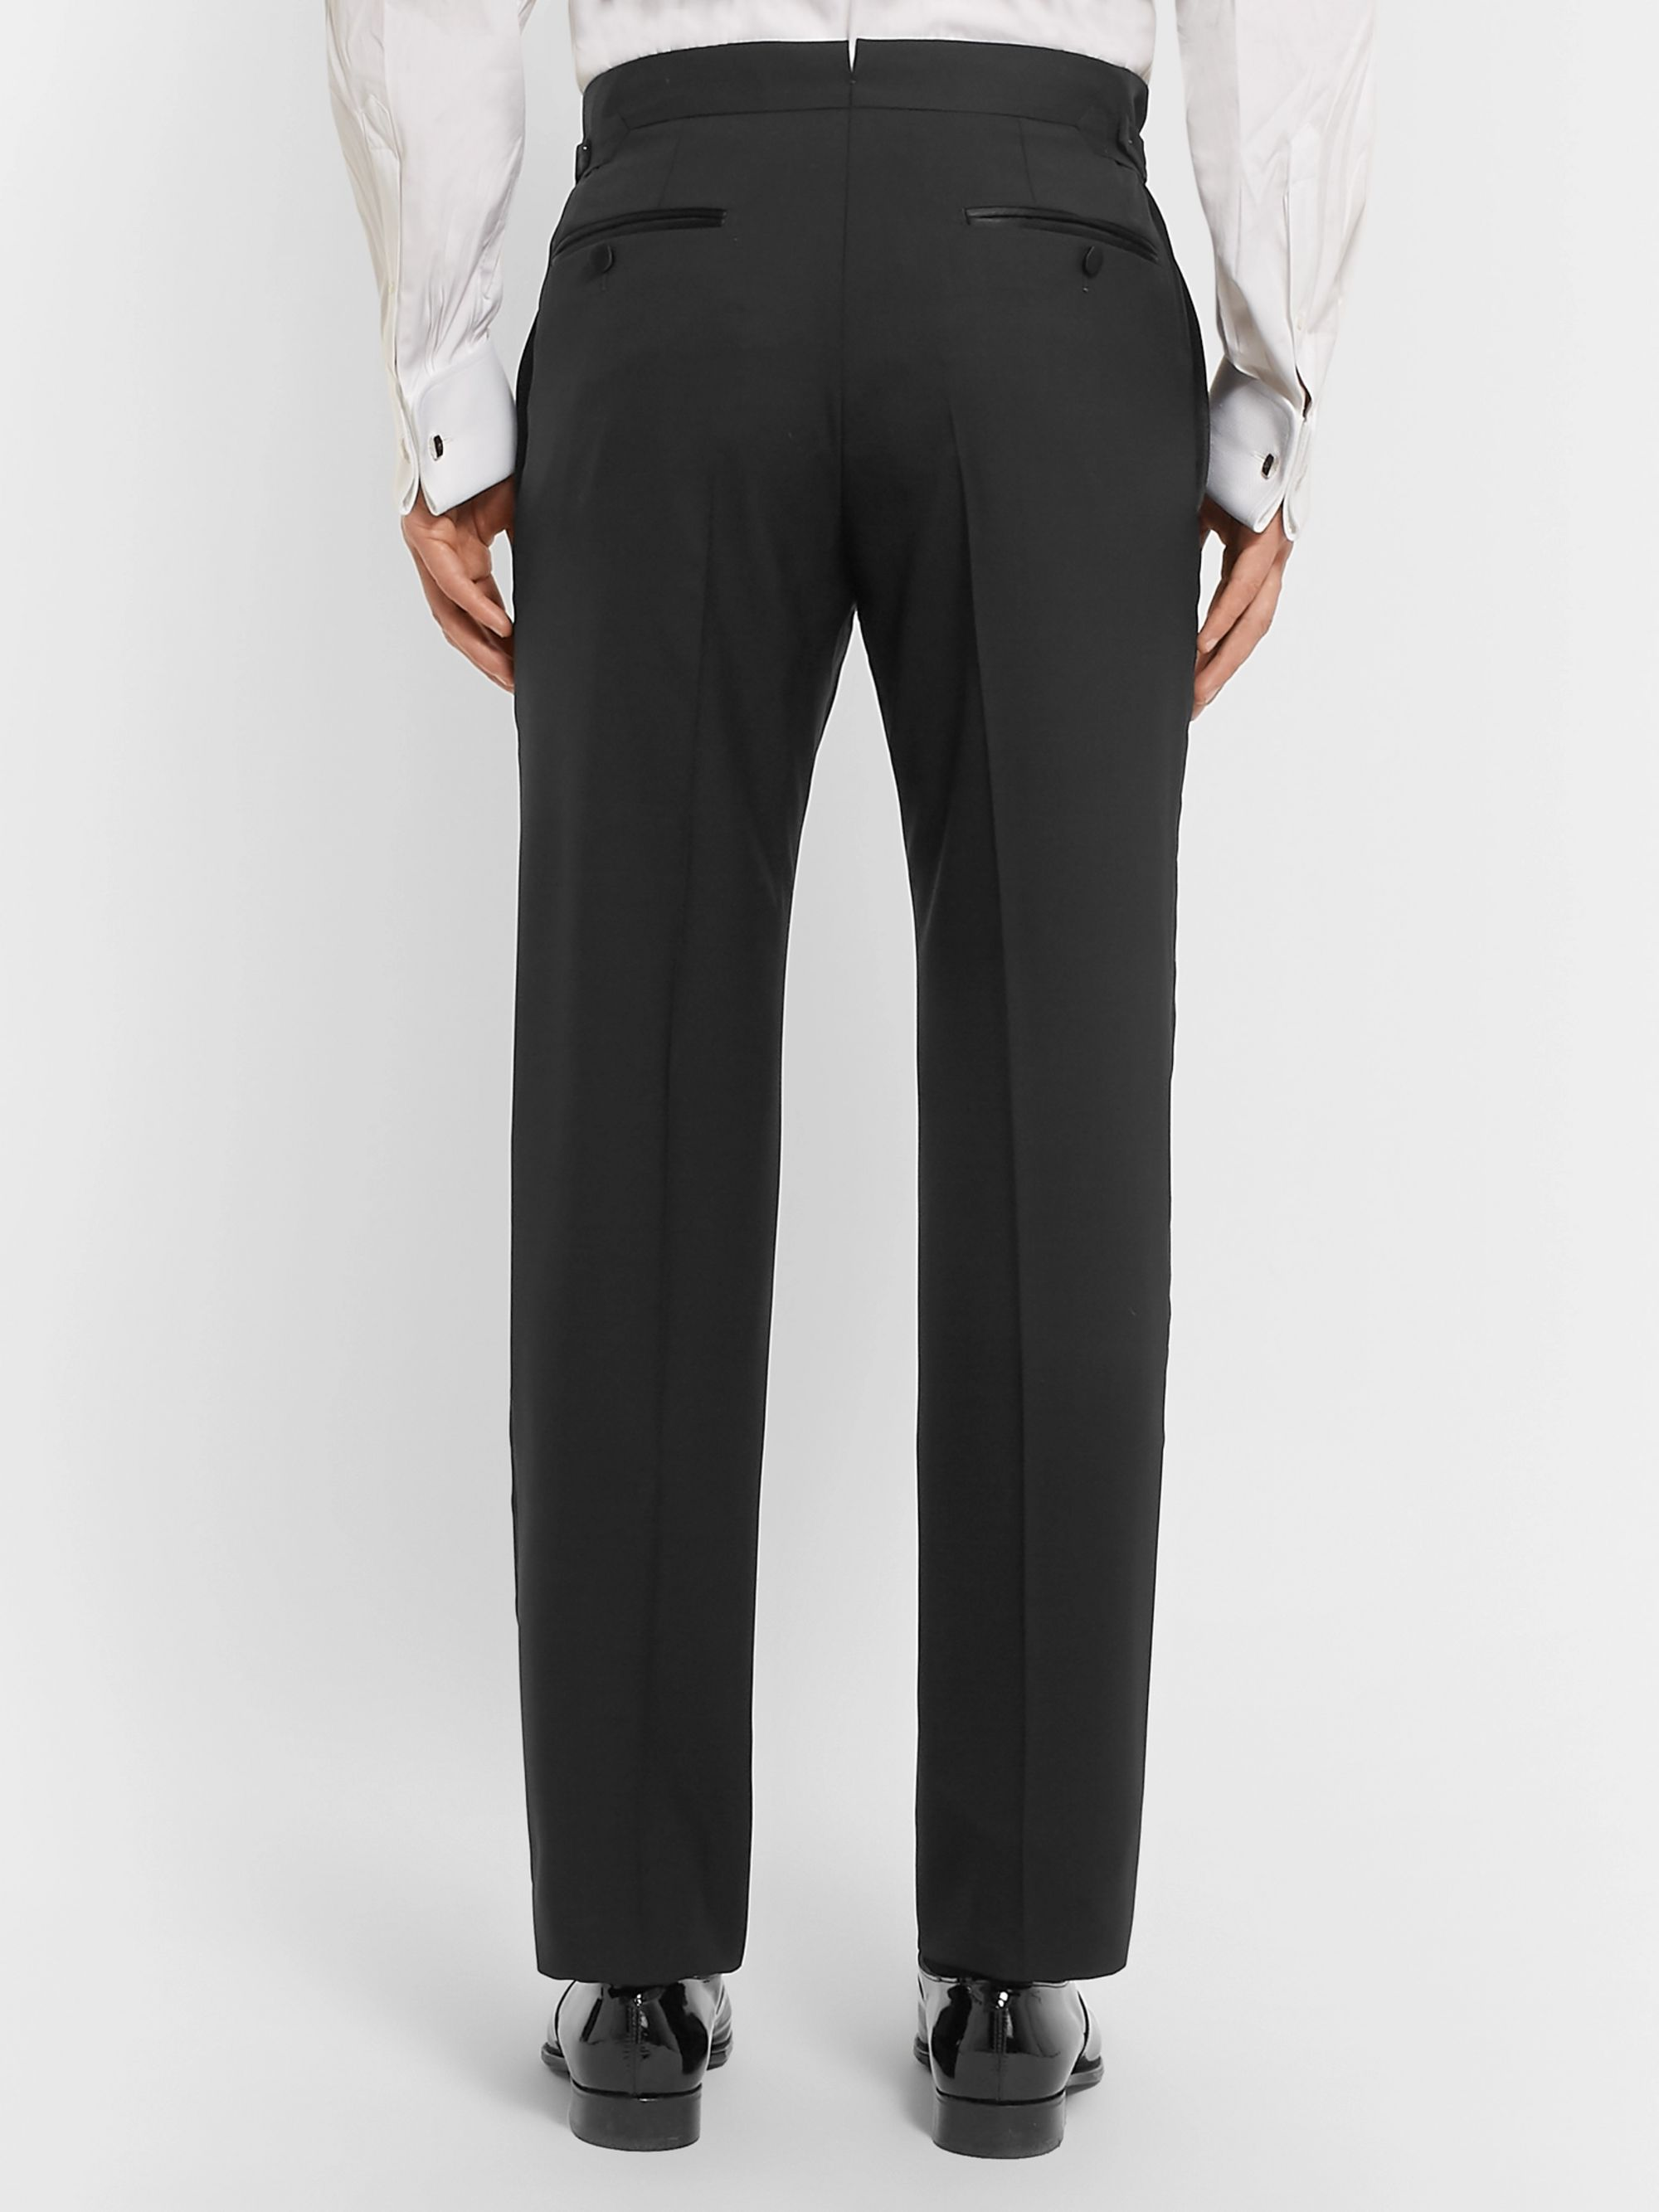 TOM FORD Black Slim-Fit Satin-Trimmed Super 120s Wool Tuxedo Trousers